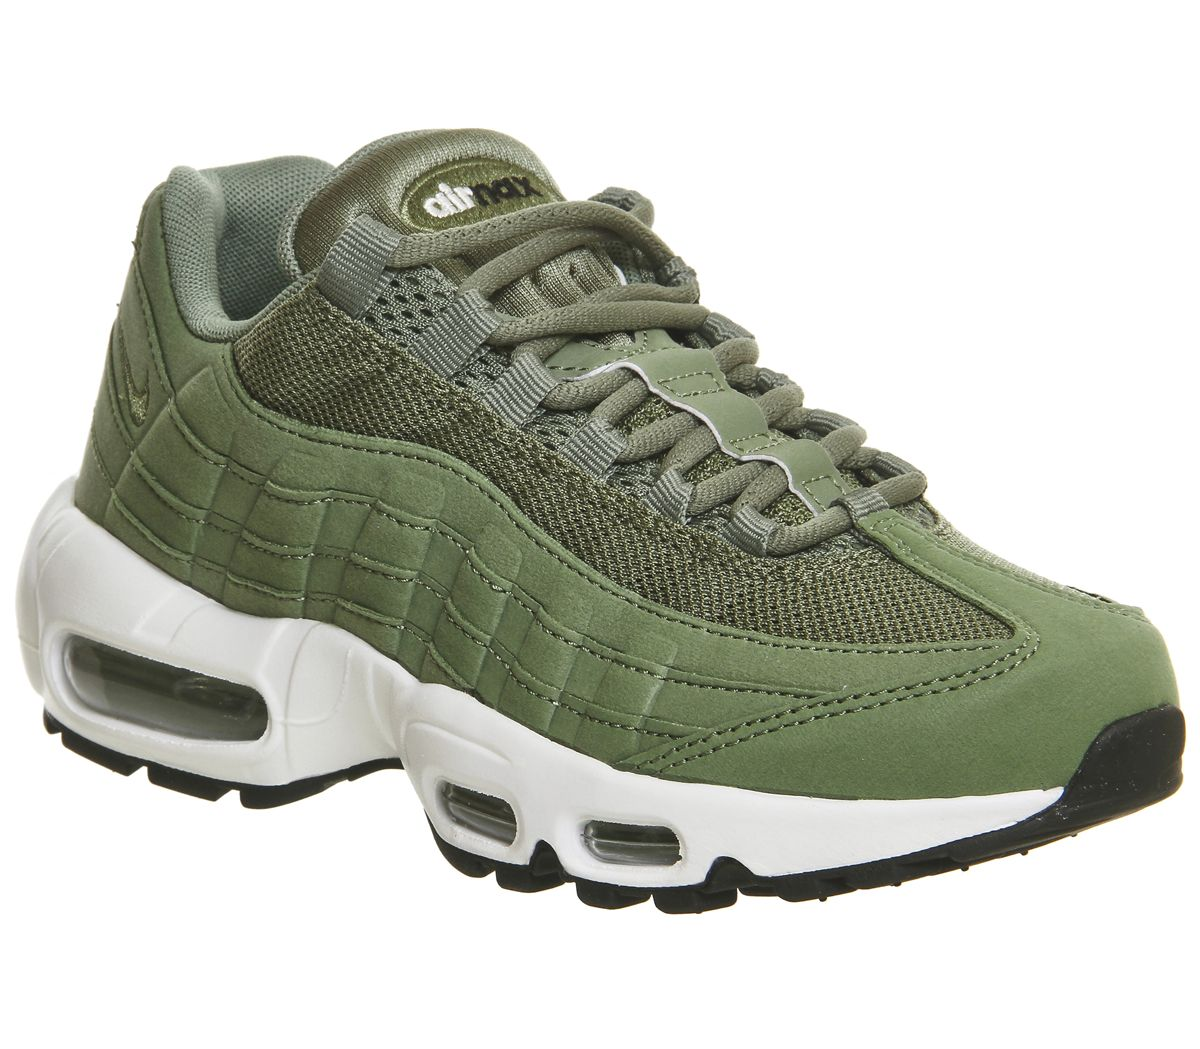 competitive price 258f2 6781b Nike Air Max 95 Legion Green Sail - Hers trainers